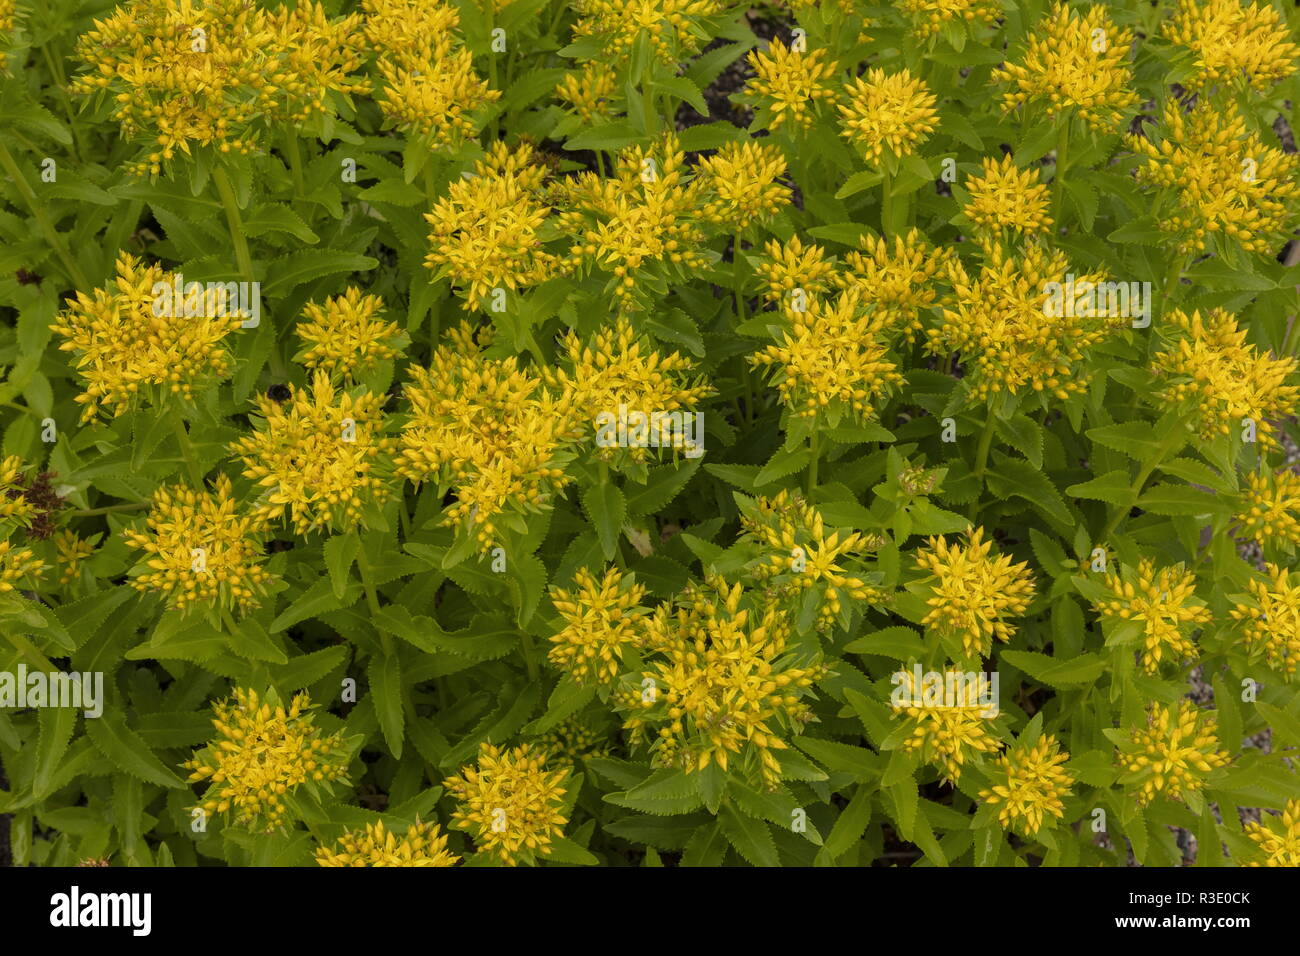 Aizoon stonecrop, Sedum aizoon, in cultivation; from Japan and eastern Asia. - Stock Image